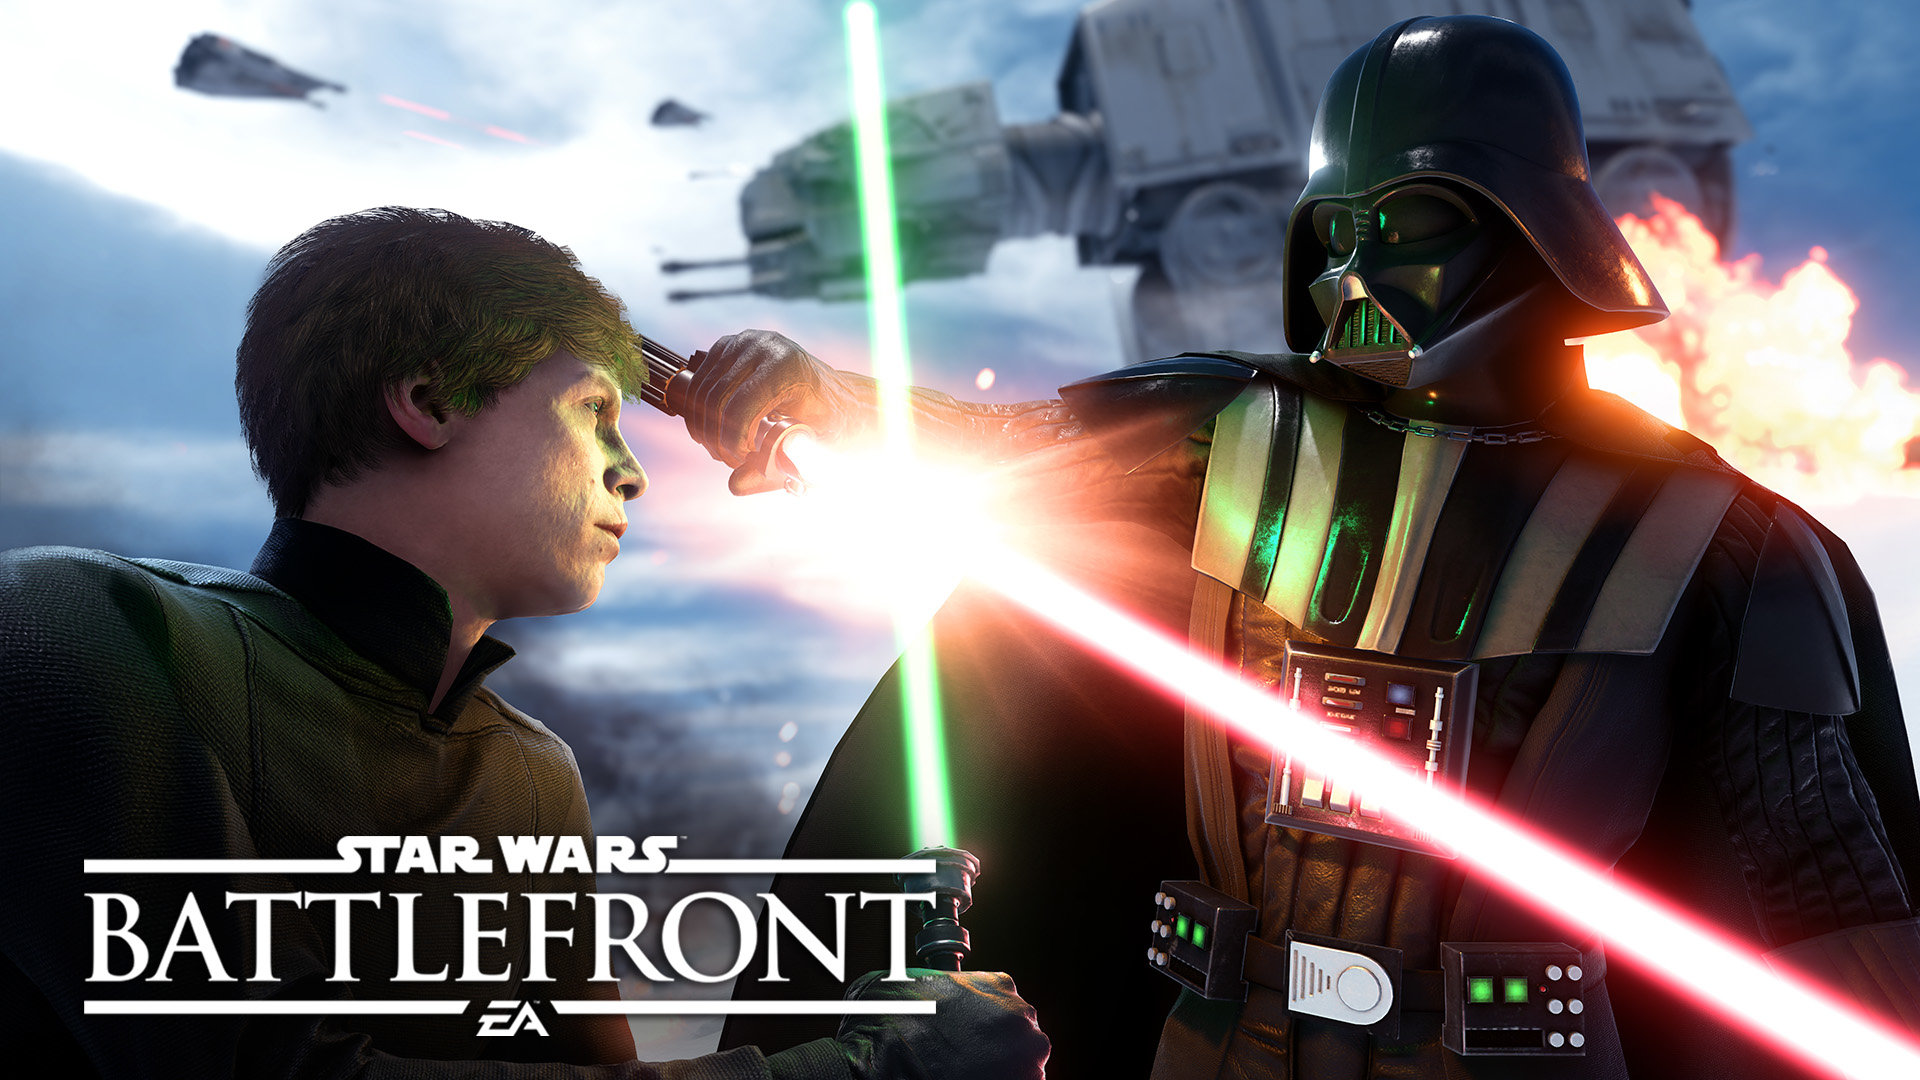 Free Star Wars Battlefront high quality wallpaper ID:162441 for full hd PC